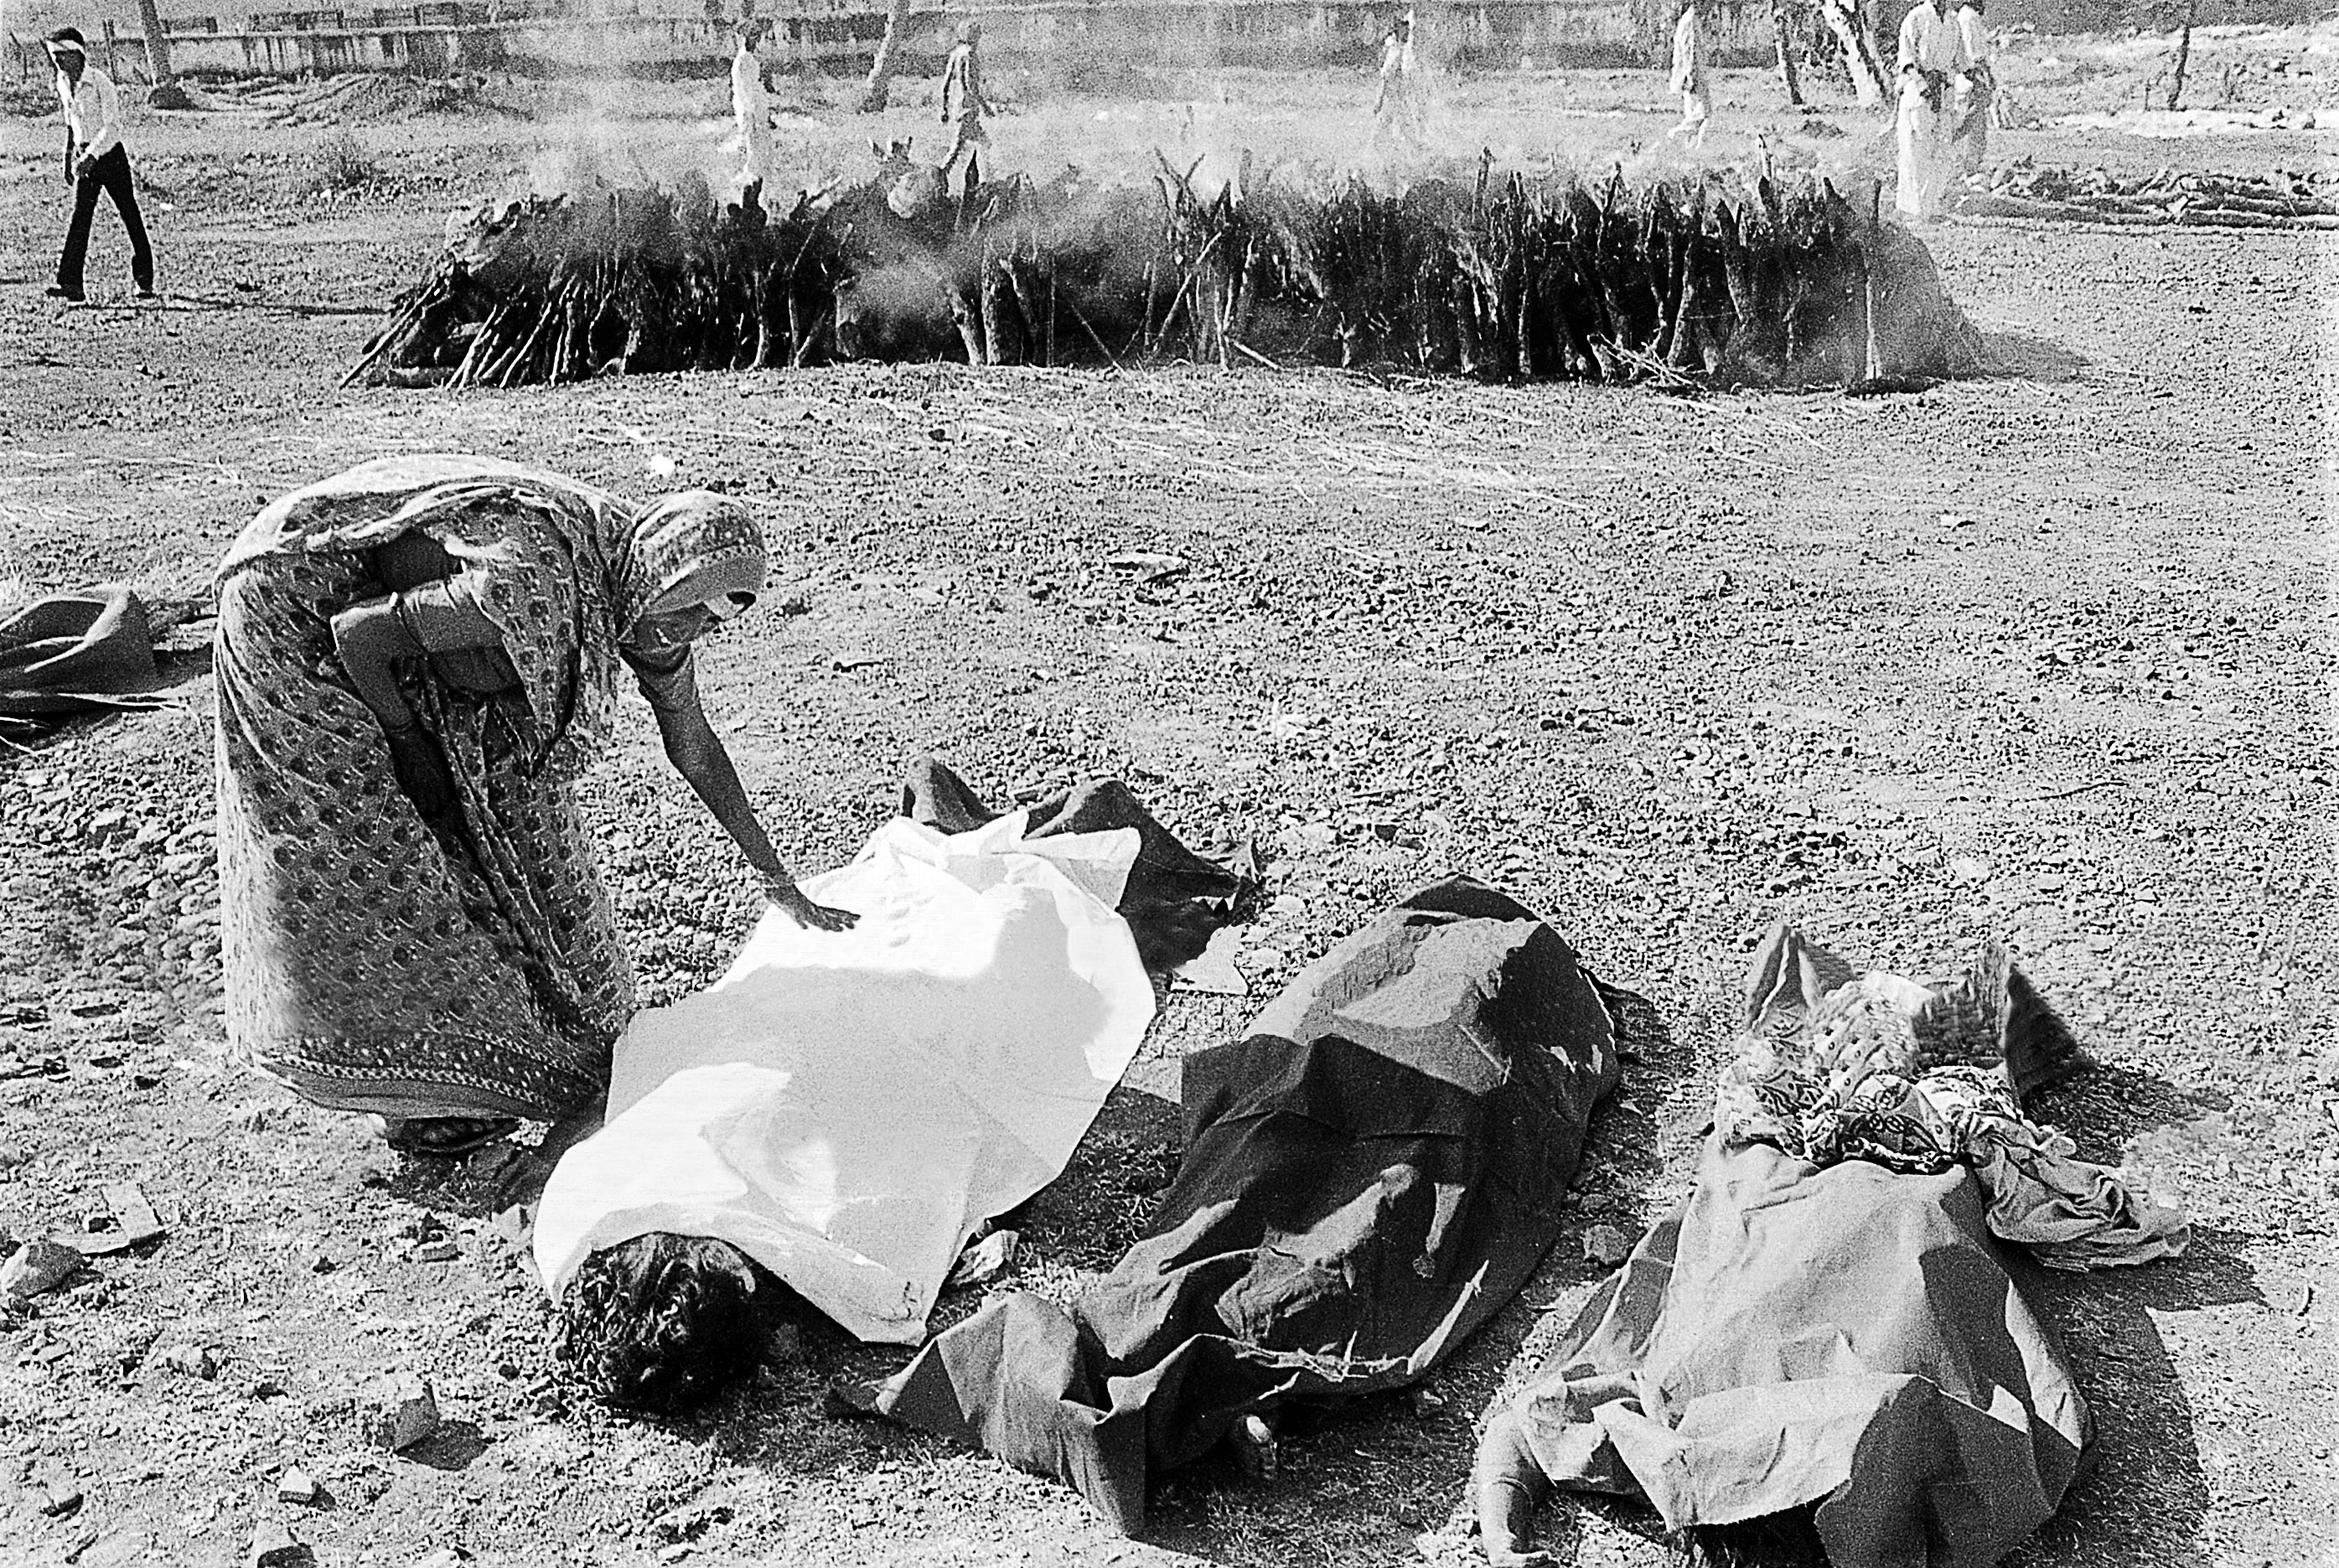 the summary of bhopal disaster The bhopal disaster was an industrial catastrophe that occurred at a pesticide plant owned and operated by union carbide (ucil) in bhopal, madhya pradesh, india around midnight on the intervening night of december 2–3, 1984, the plant released methyl isocyanate (mic) gas and other toxins, resulting in the exposure of over.